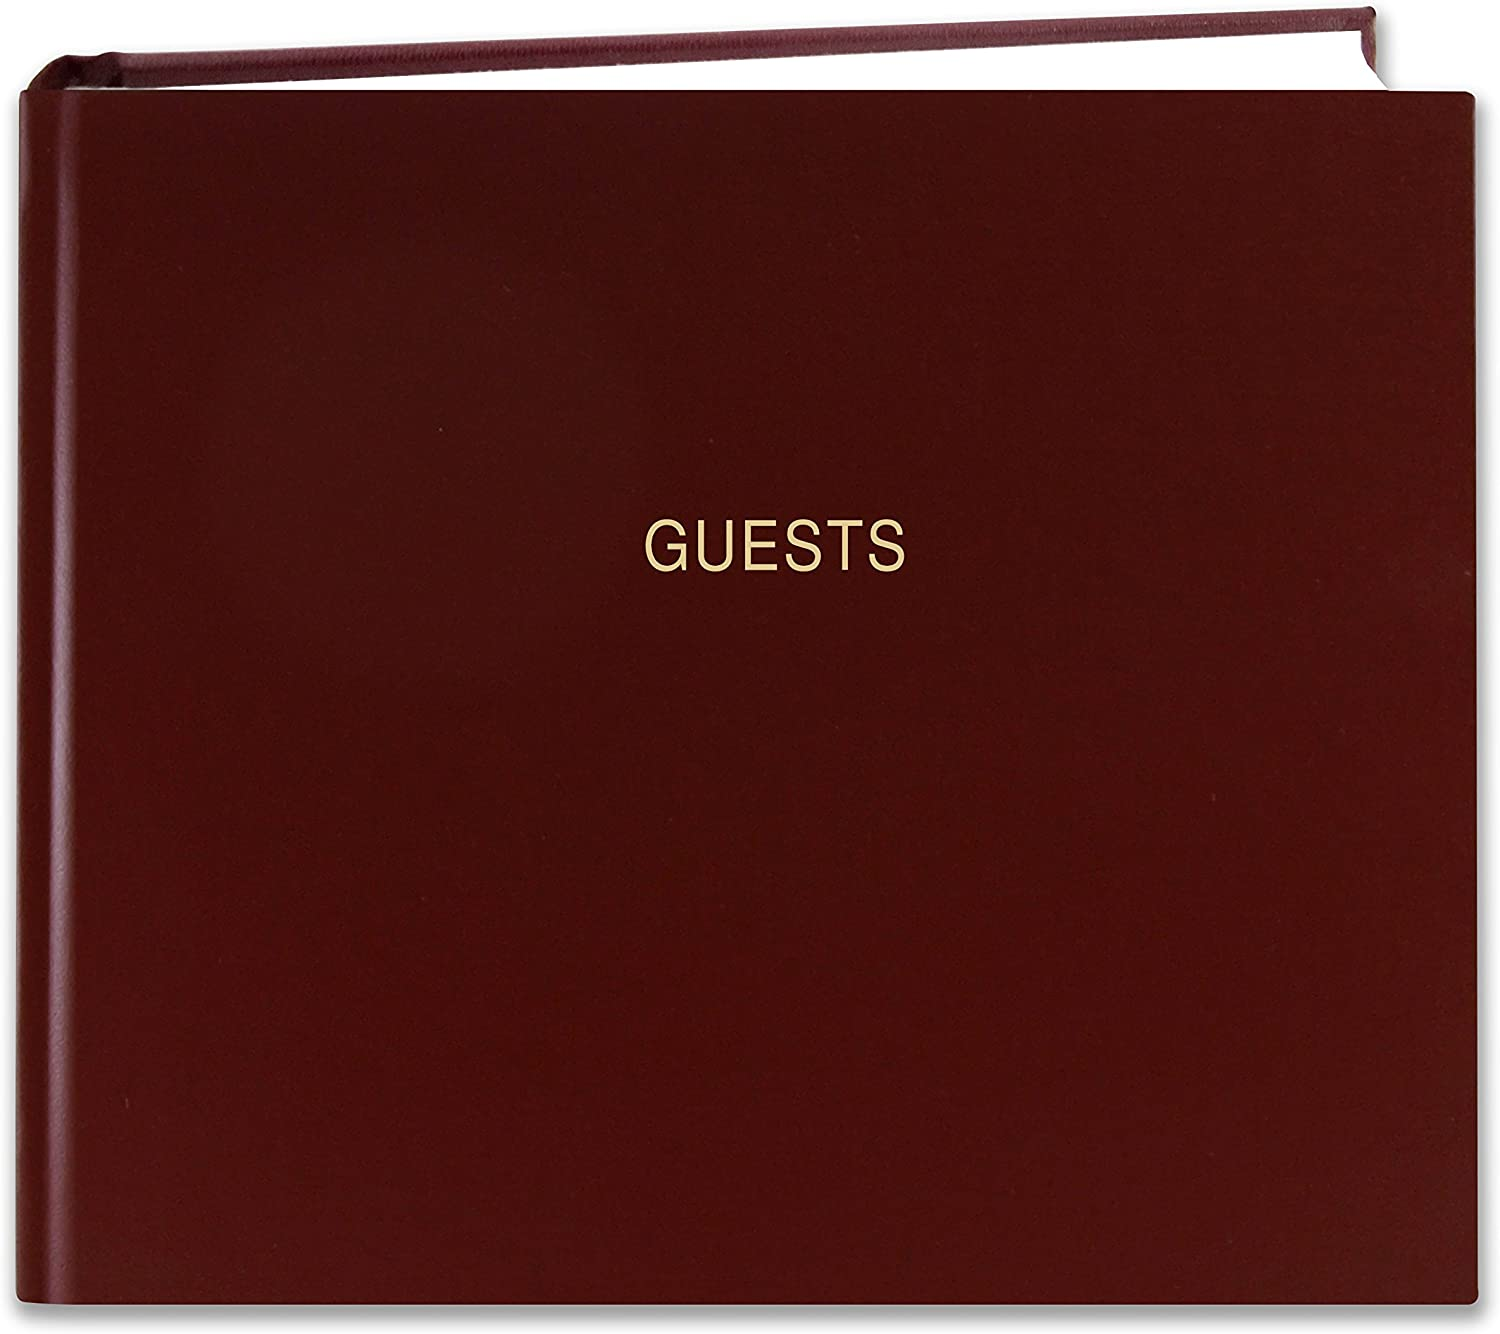 "BookFactory Guest Book (120 Pages) / Guest Sign-in Book/Guest Registry/Guestbook - Burgundy Cover, Smyth Sewn Hardbound, 8 7/8"" x 7"" (LOG-120-GUEST-A-LMT25)"